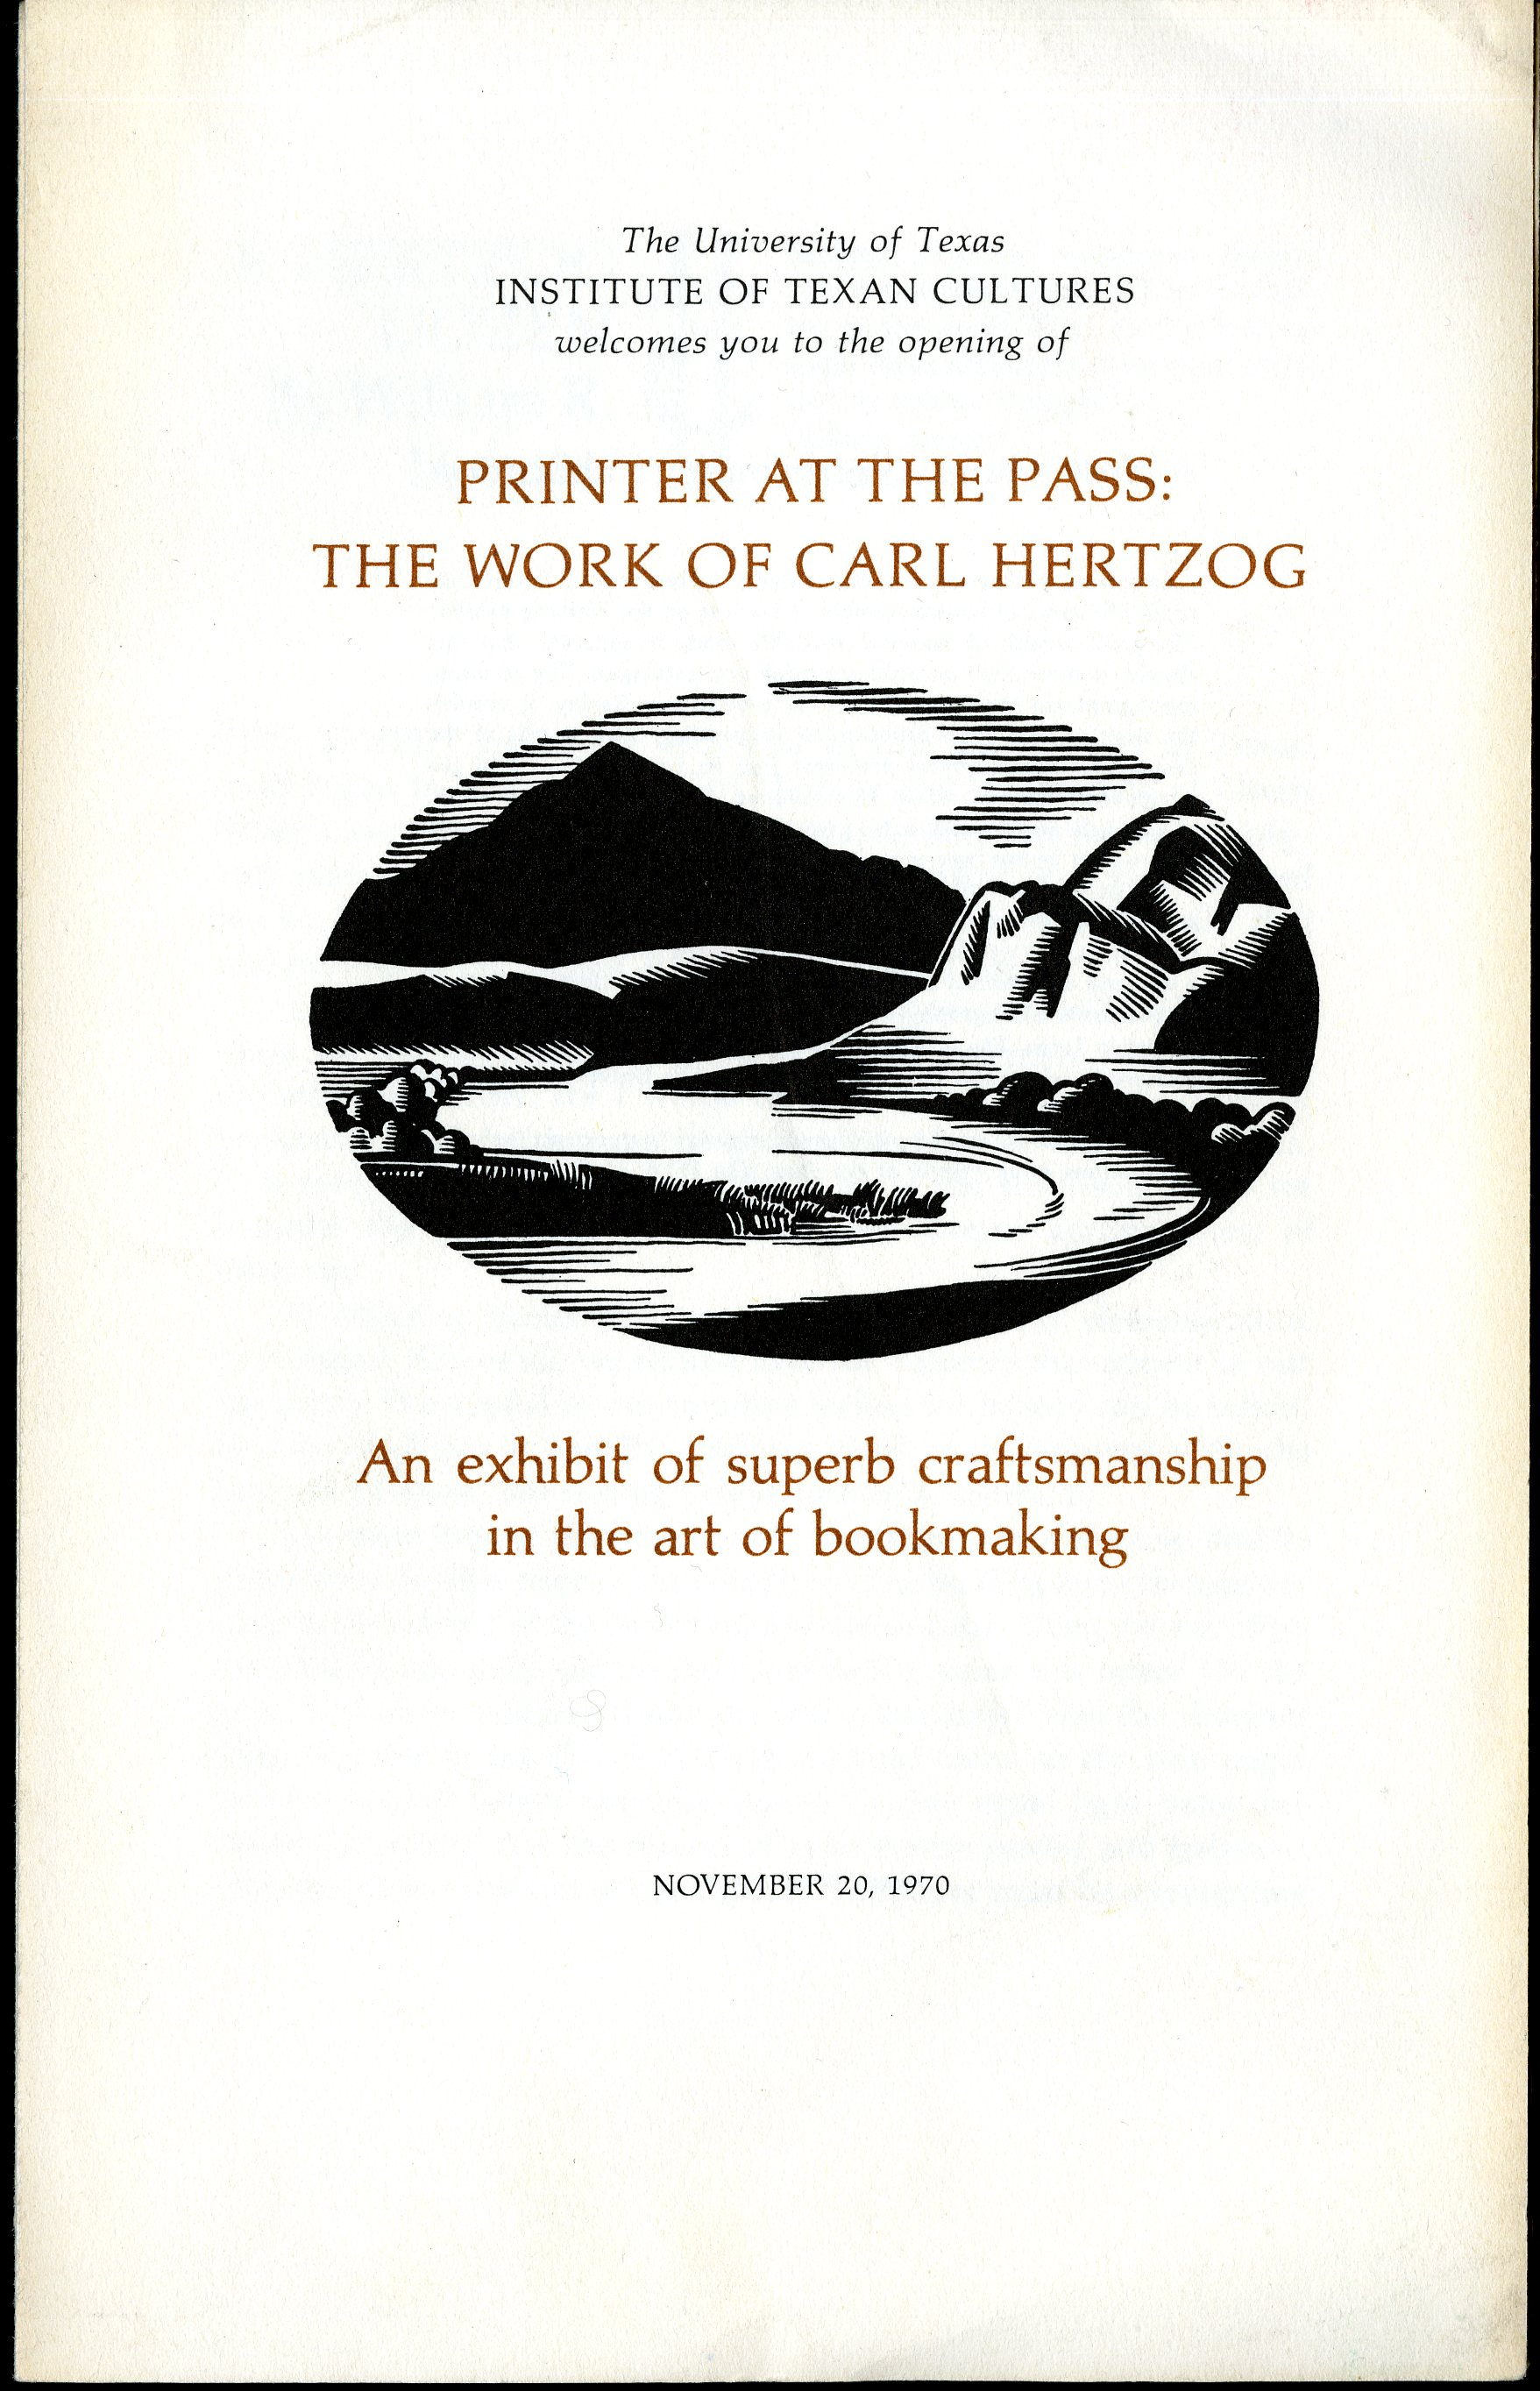 Color printing el paso tx - Printer At The Pass The Work Of Carl Hertzog 1970 Encino Z232